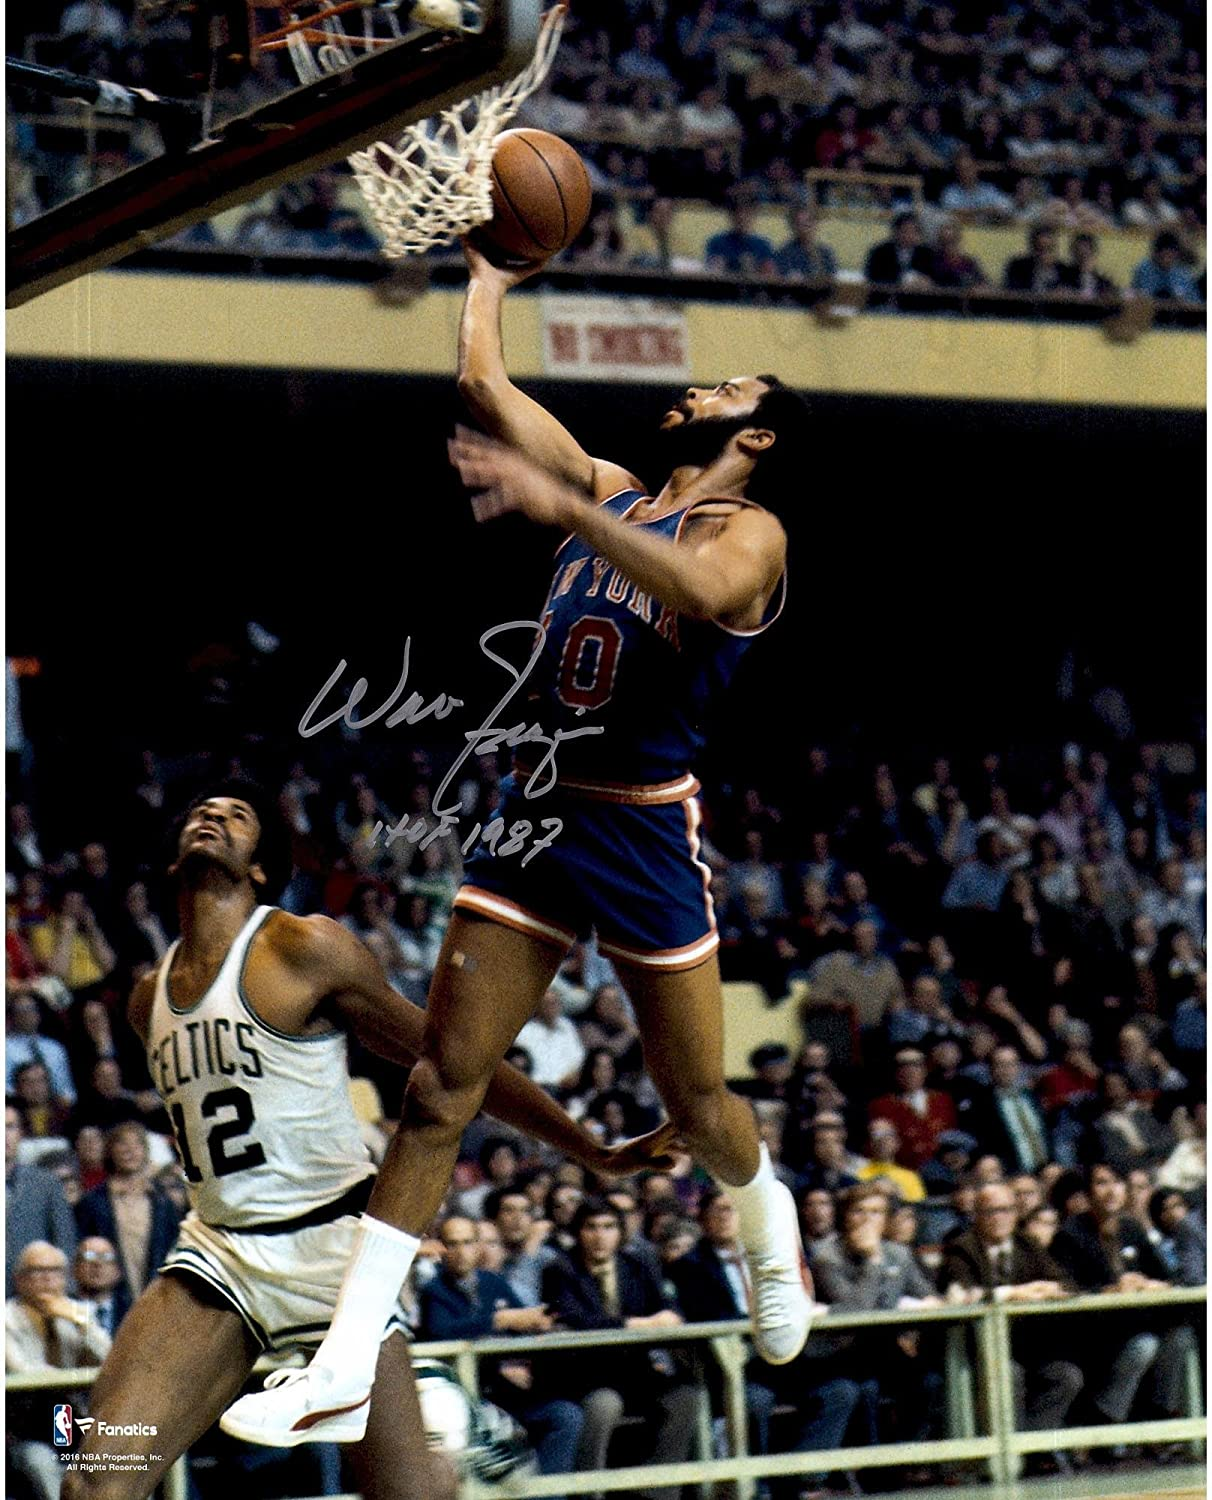 Walt Frazier New York Knicks Autographed 16' x 20' Blue Lay-Up Photograph with'HOF 87' Inscription - Fanatics Authentic Certified